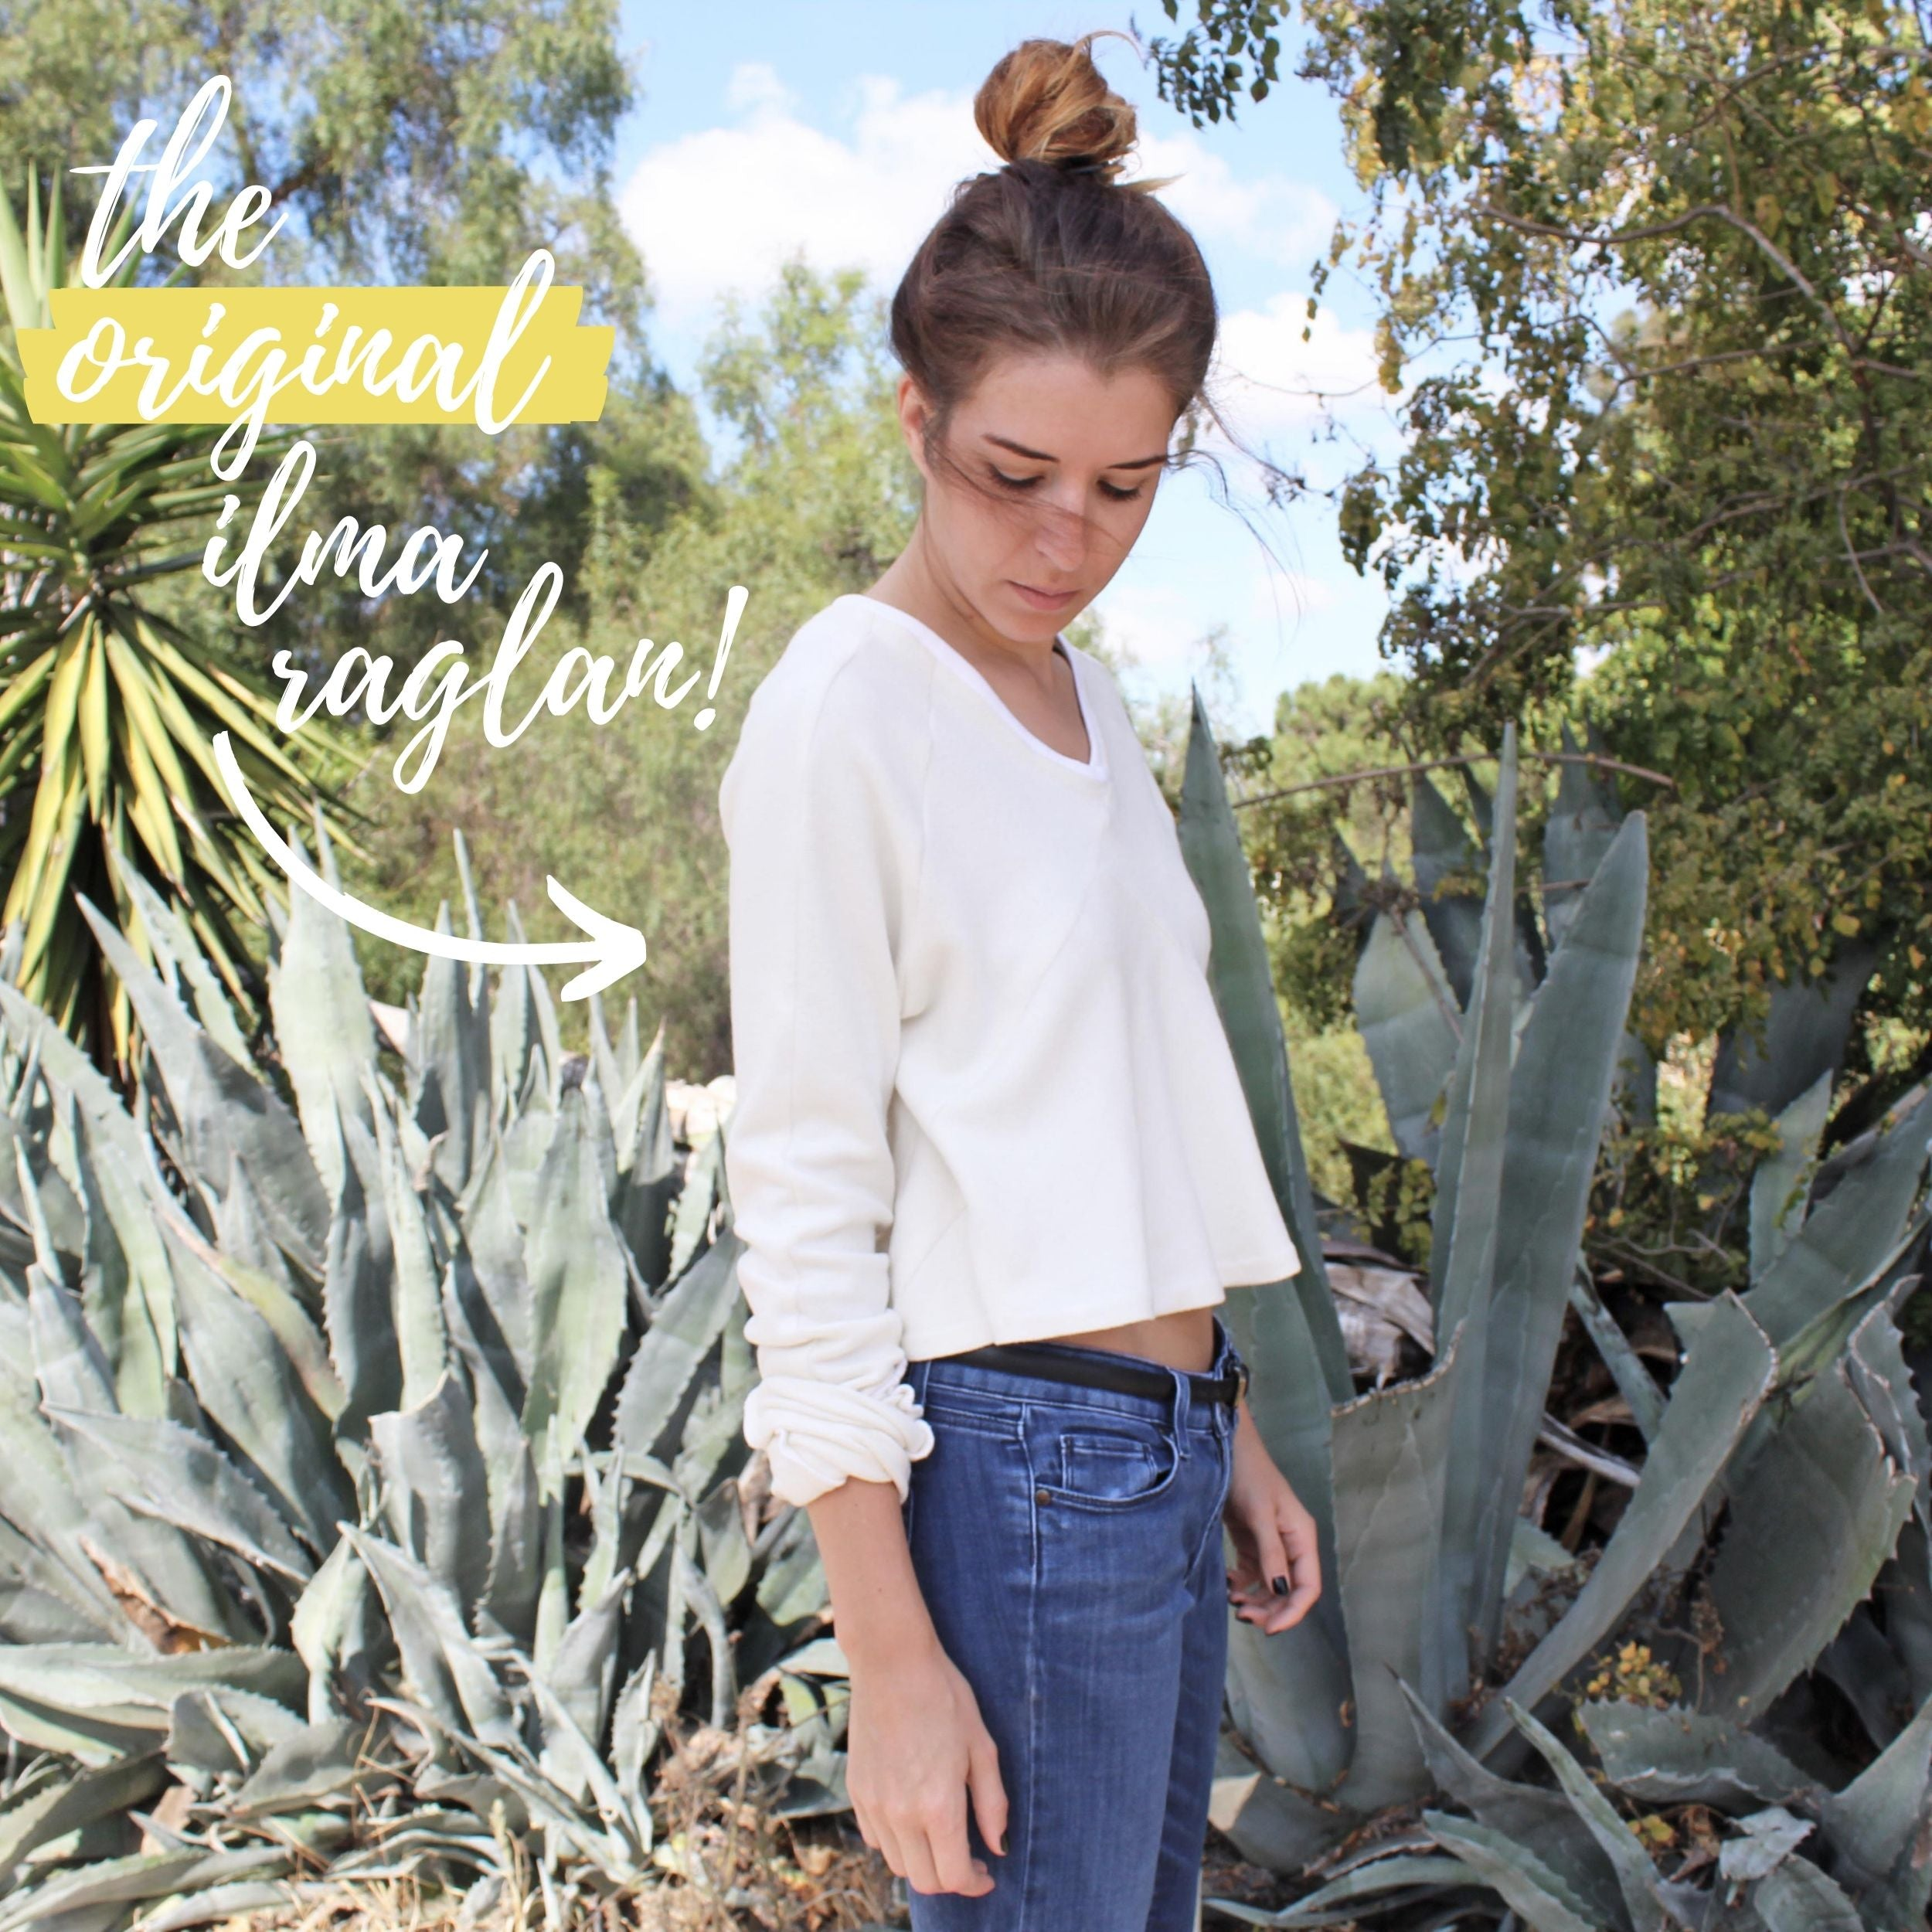 Sewing Pattern Variation: The Ilma Raglan Original Version